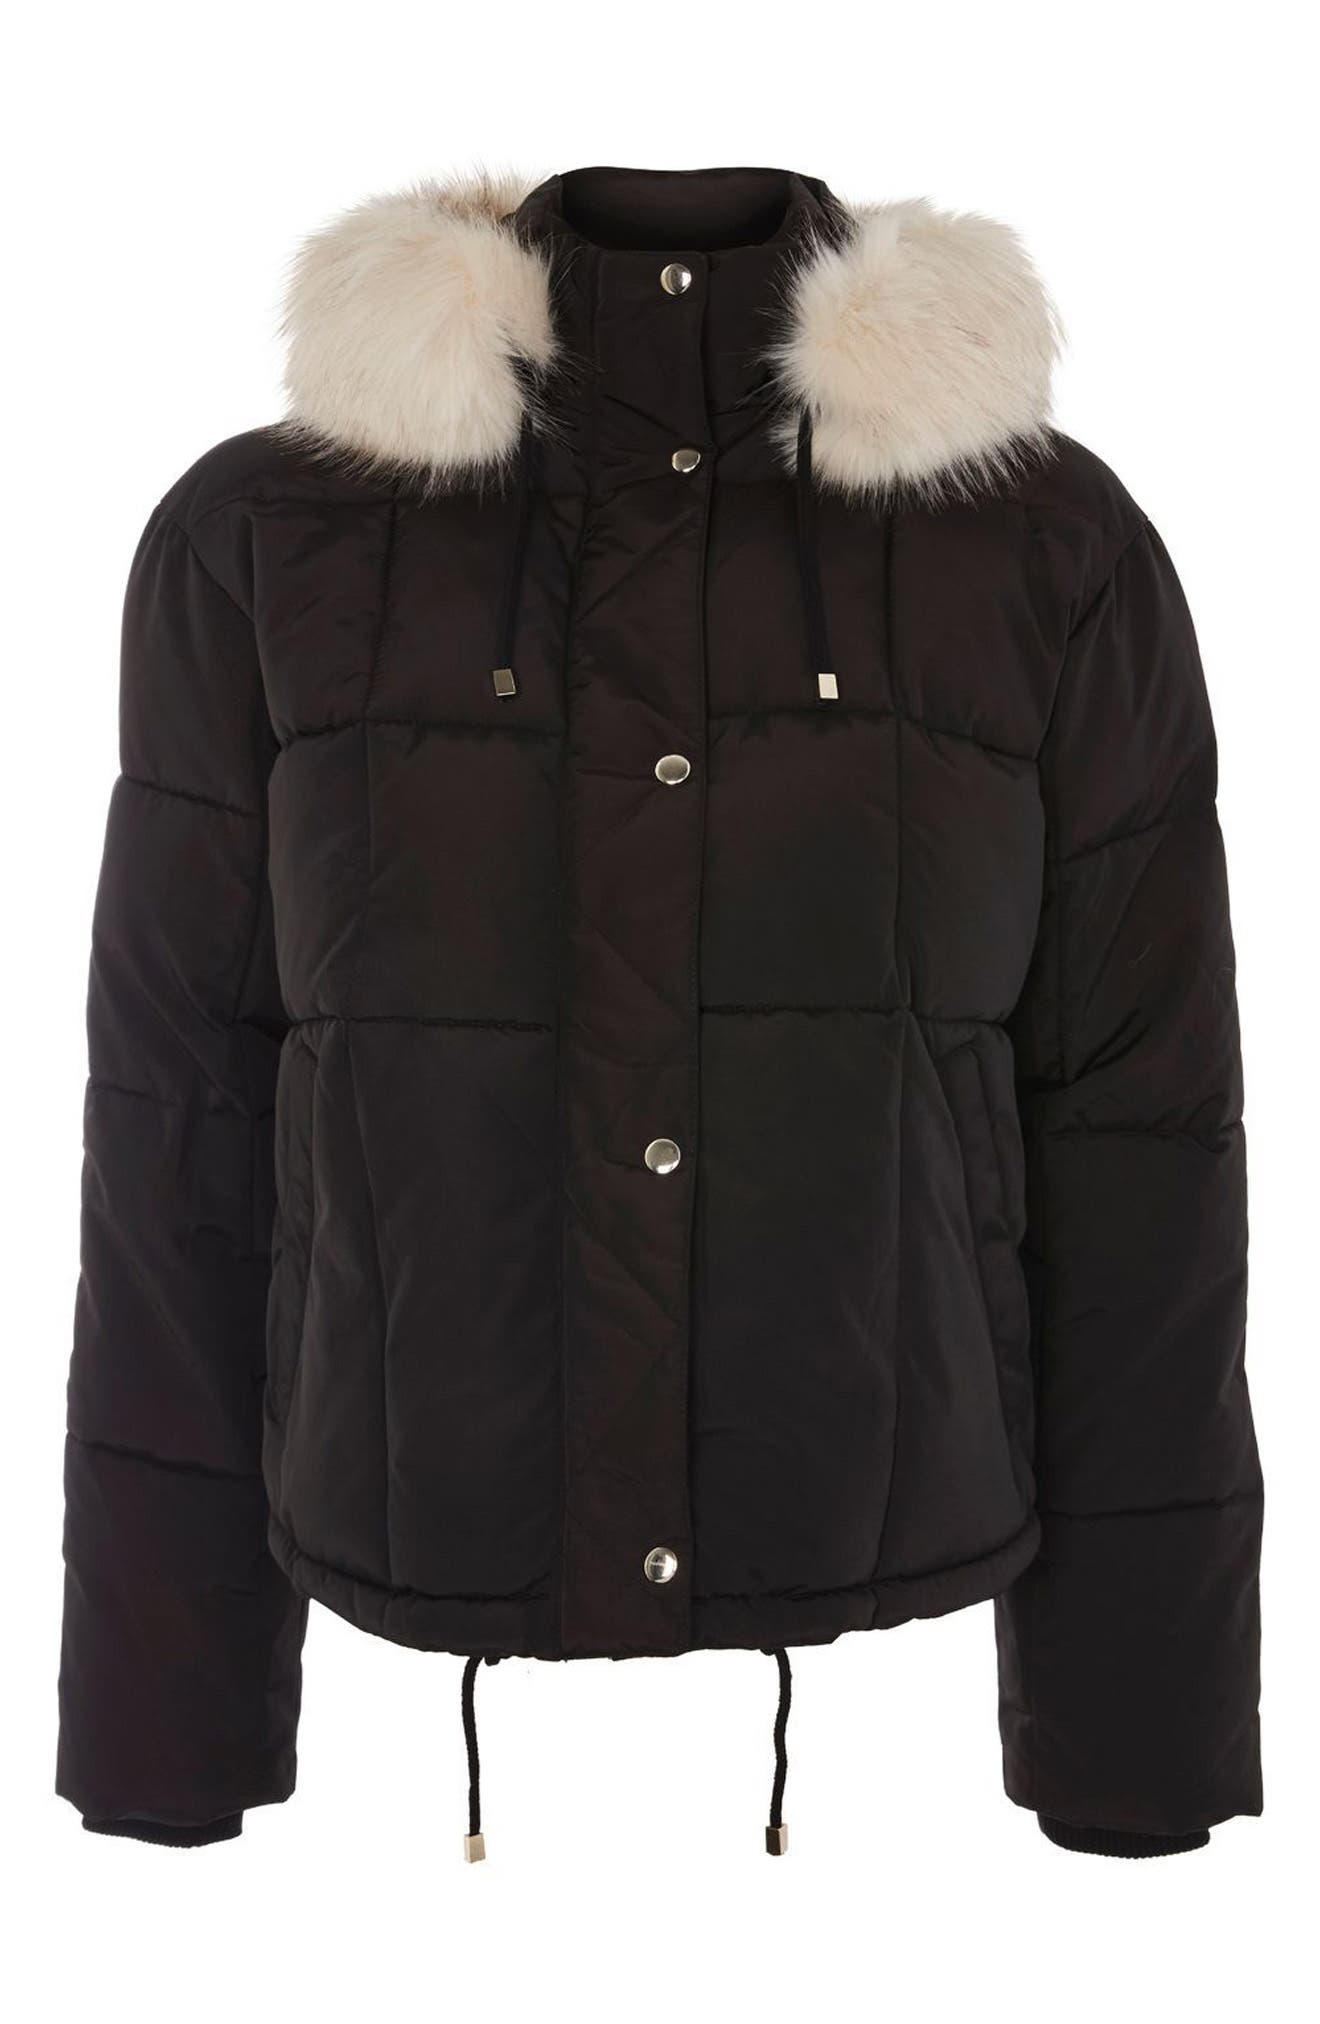 Faux Fur Lined Puffer Jacket,                             Alternate thumbnail 2, color,                             001